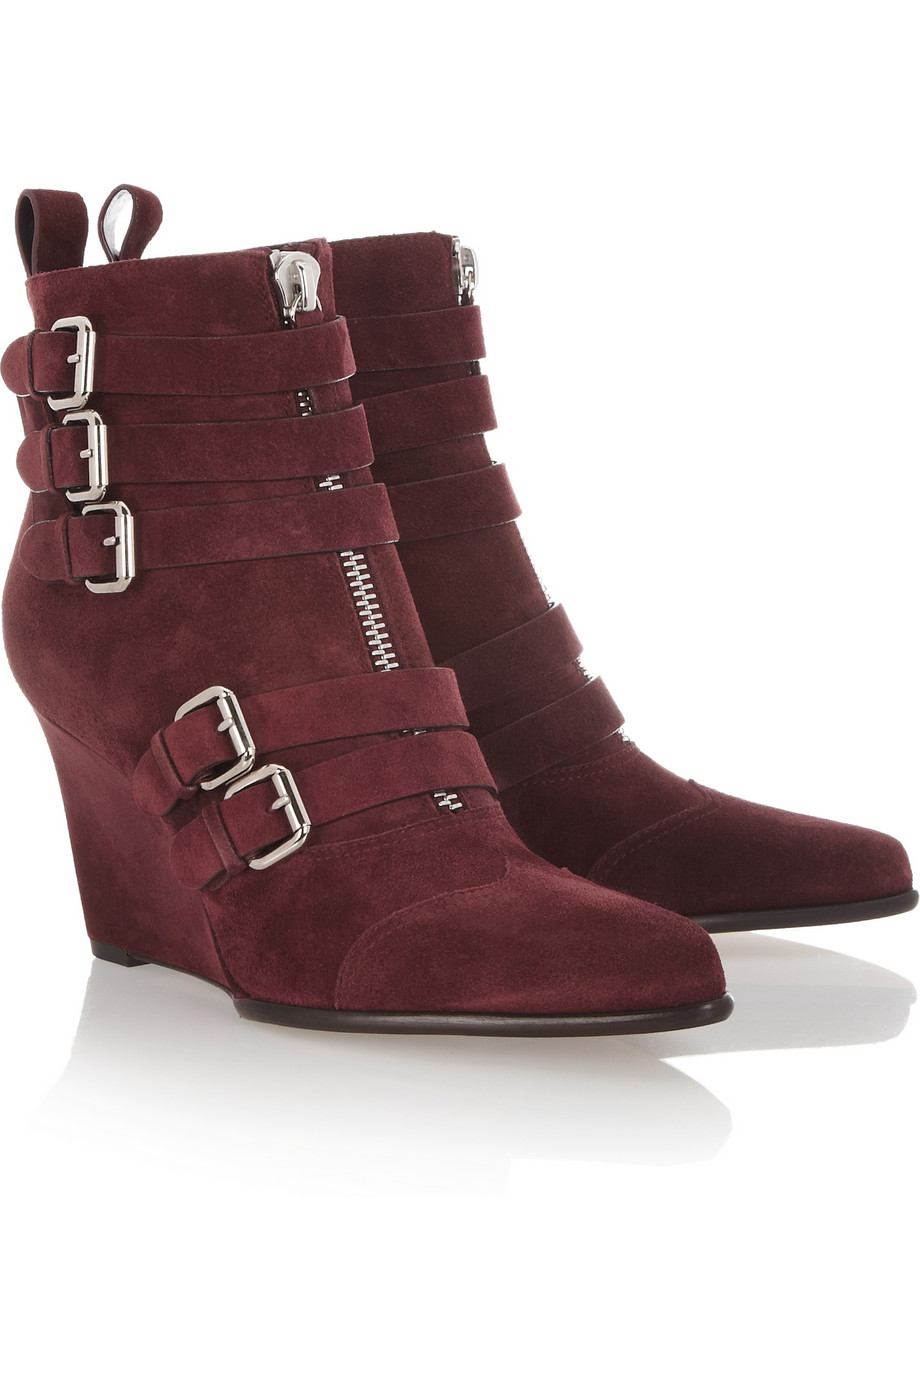 2312324e368 Lyst - Tabitha Simmons Harley Suede Wedge Ankle Boots in Red